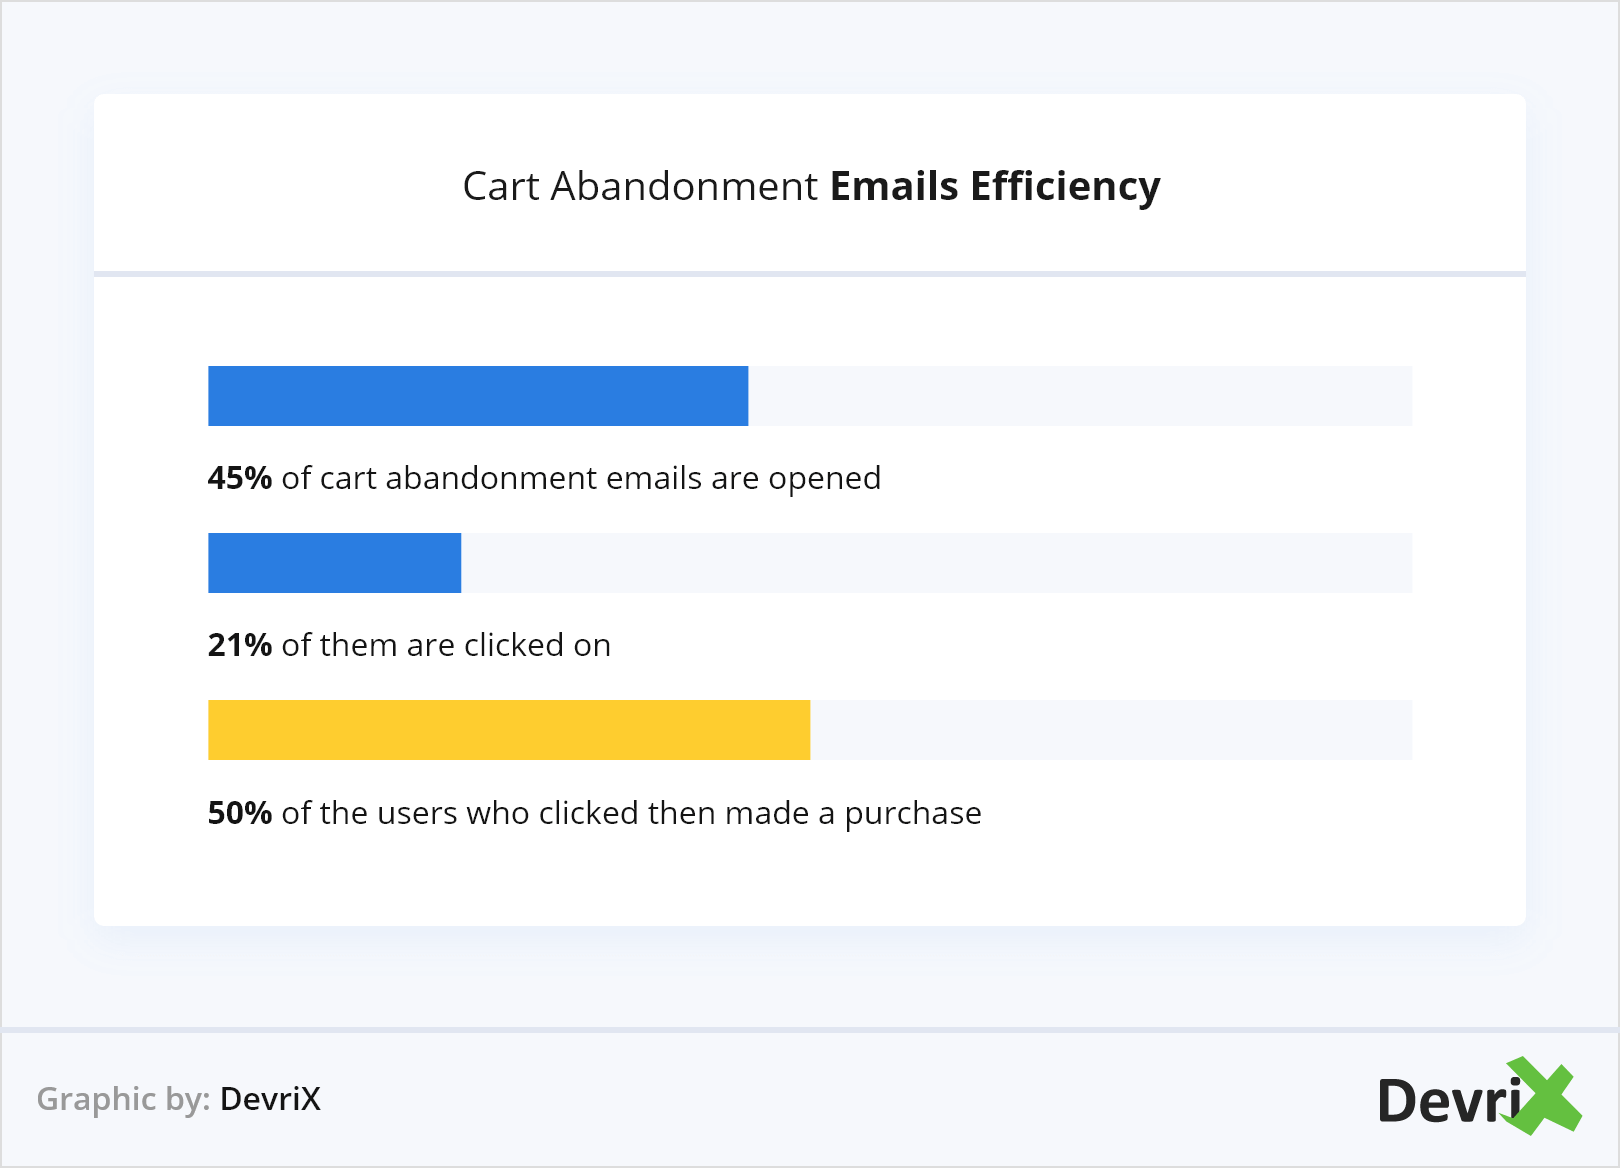 Cart Abandonment Emails Efficiency